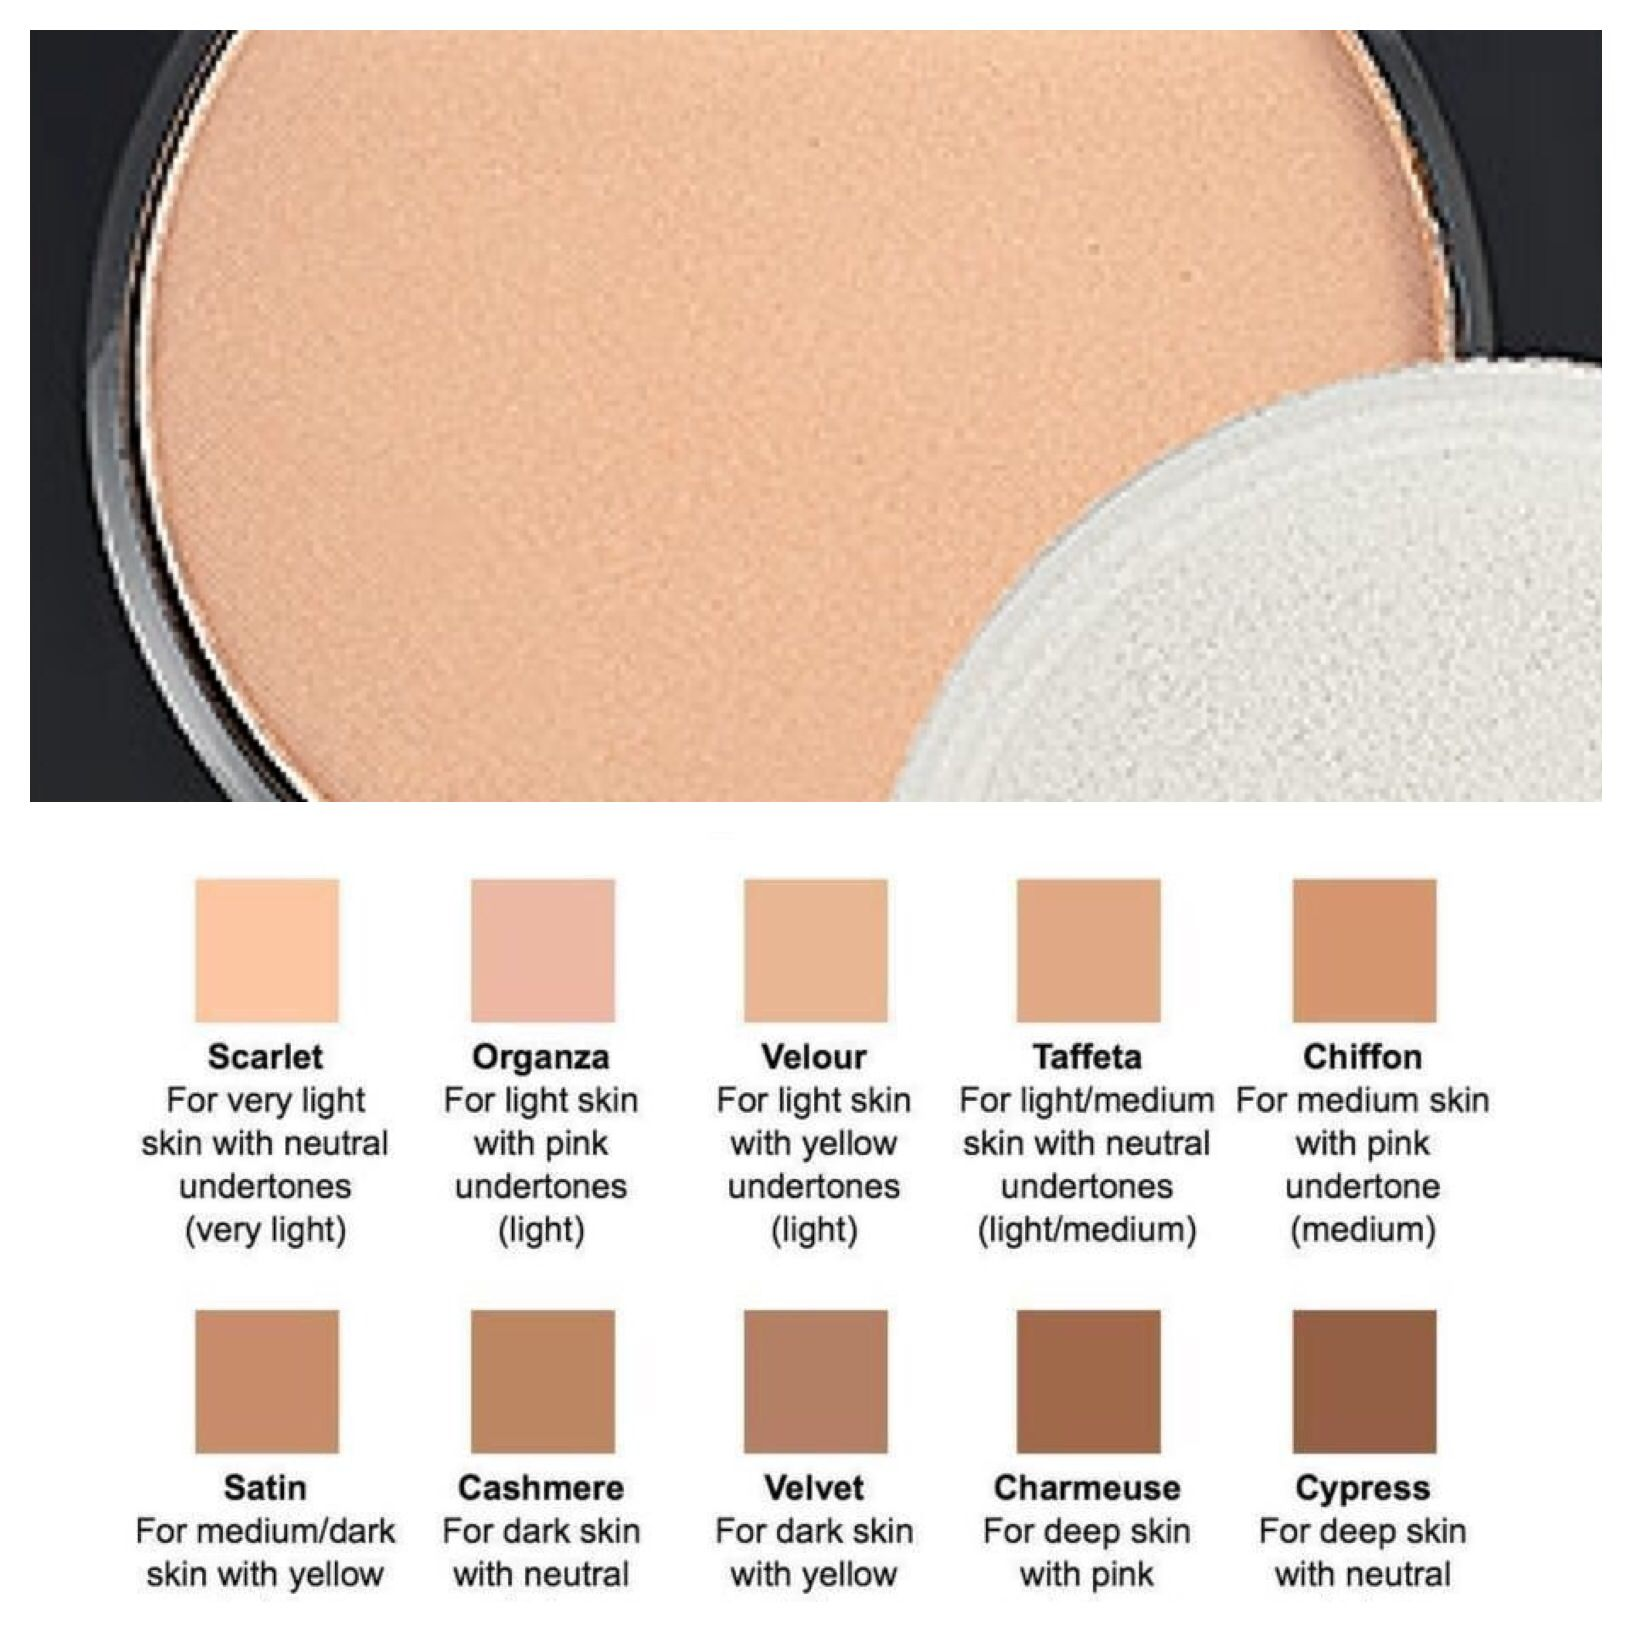 Need help matching your current foundation with a Younique